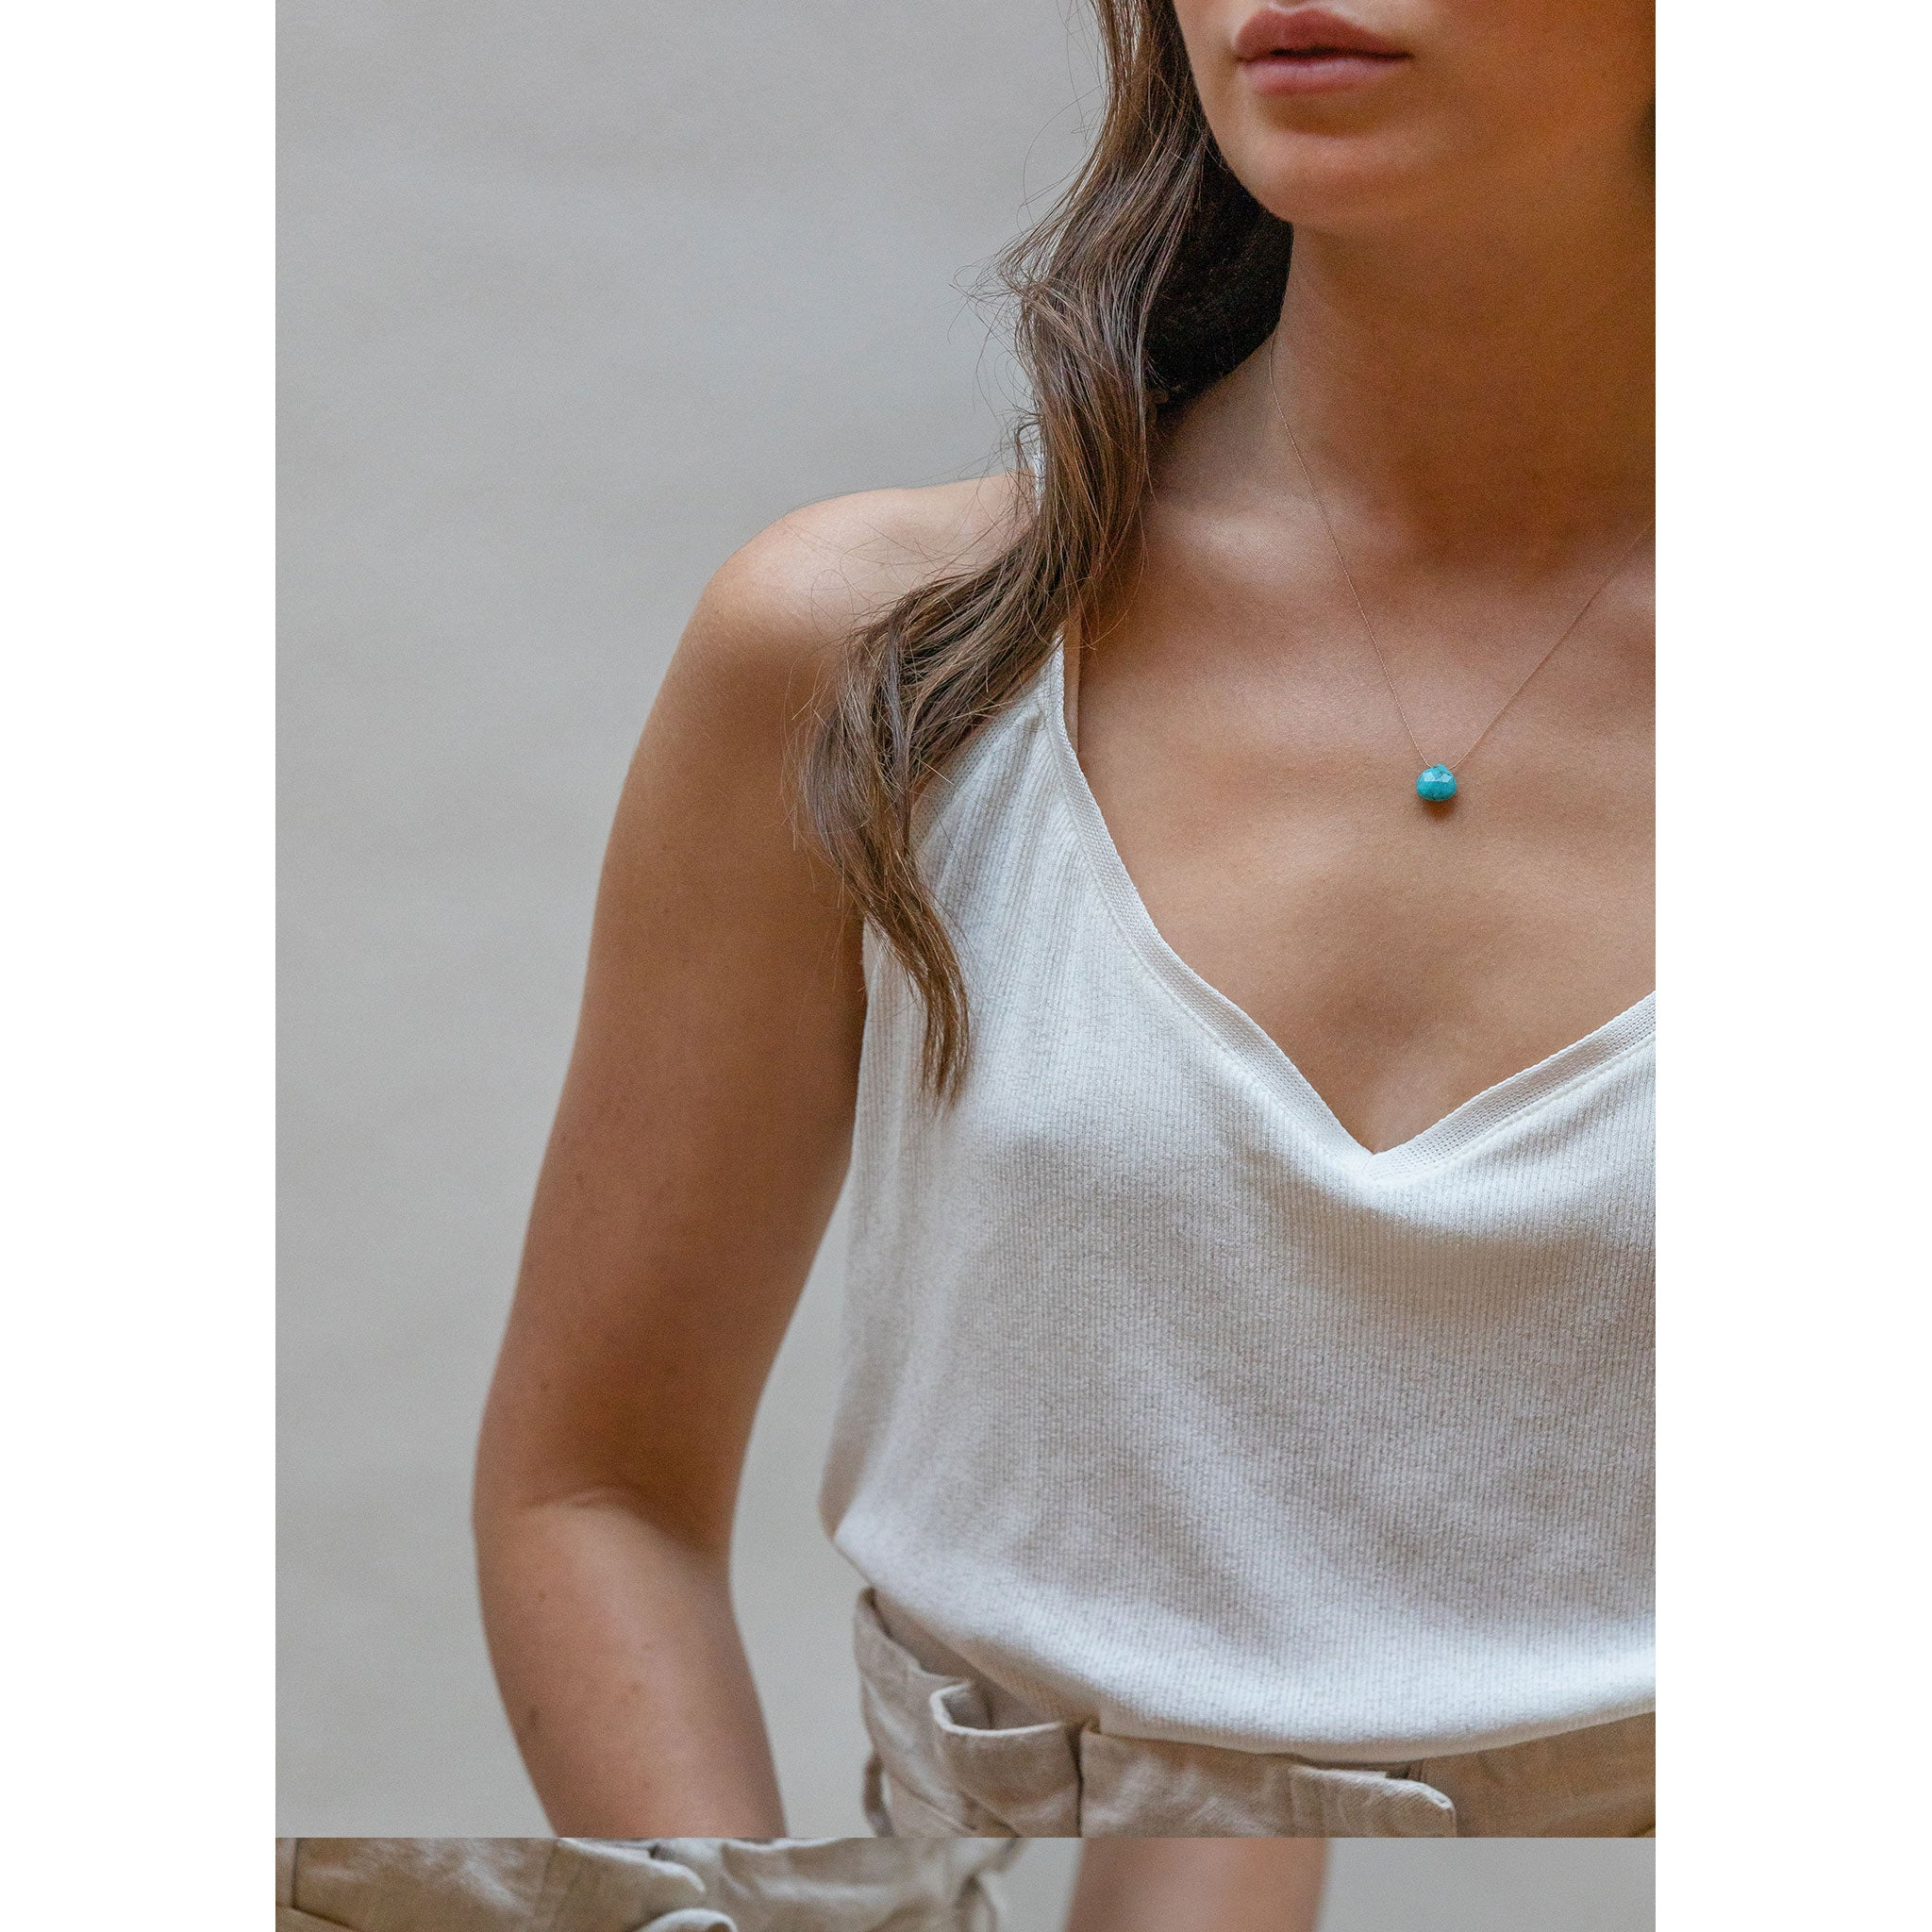 Wanderlust Life Ethically Handmade jewellery made in the UK. Minimalist gold and fine cord jewellery. turquoise fine cord necklace